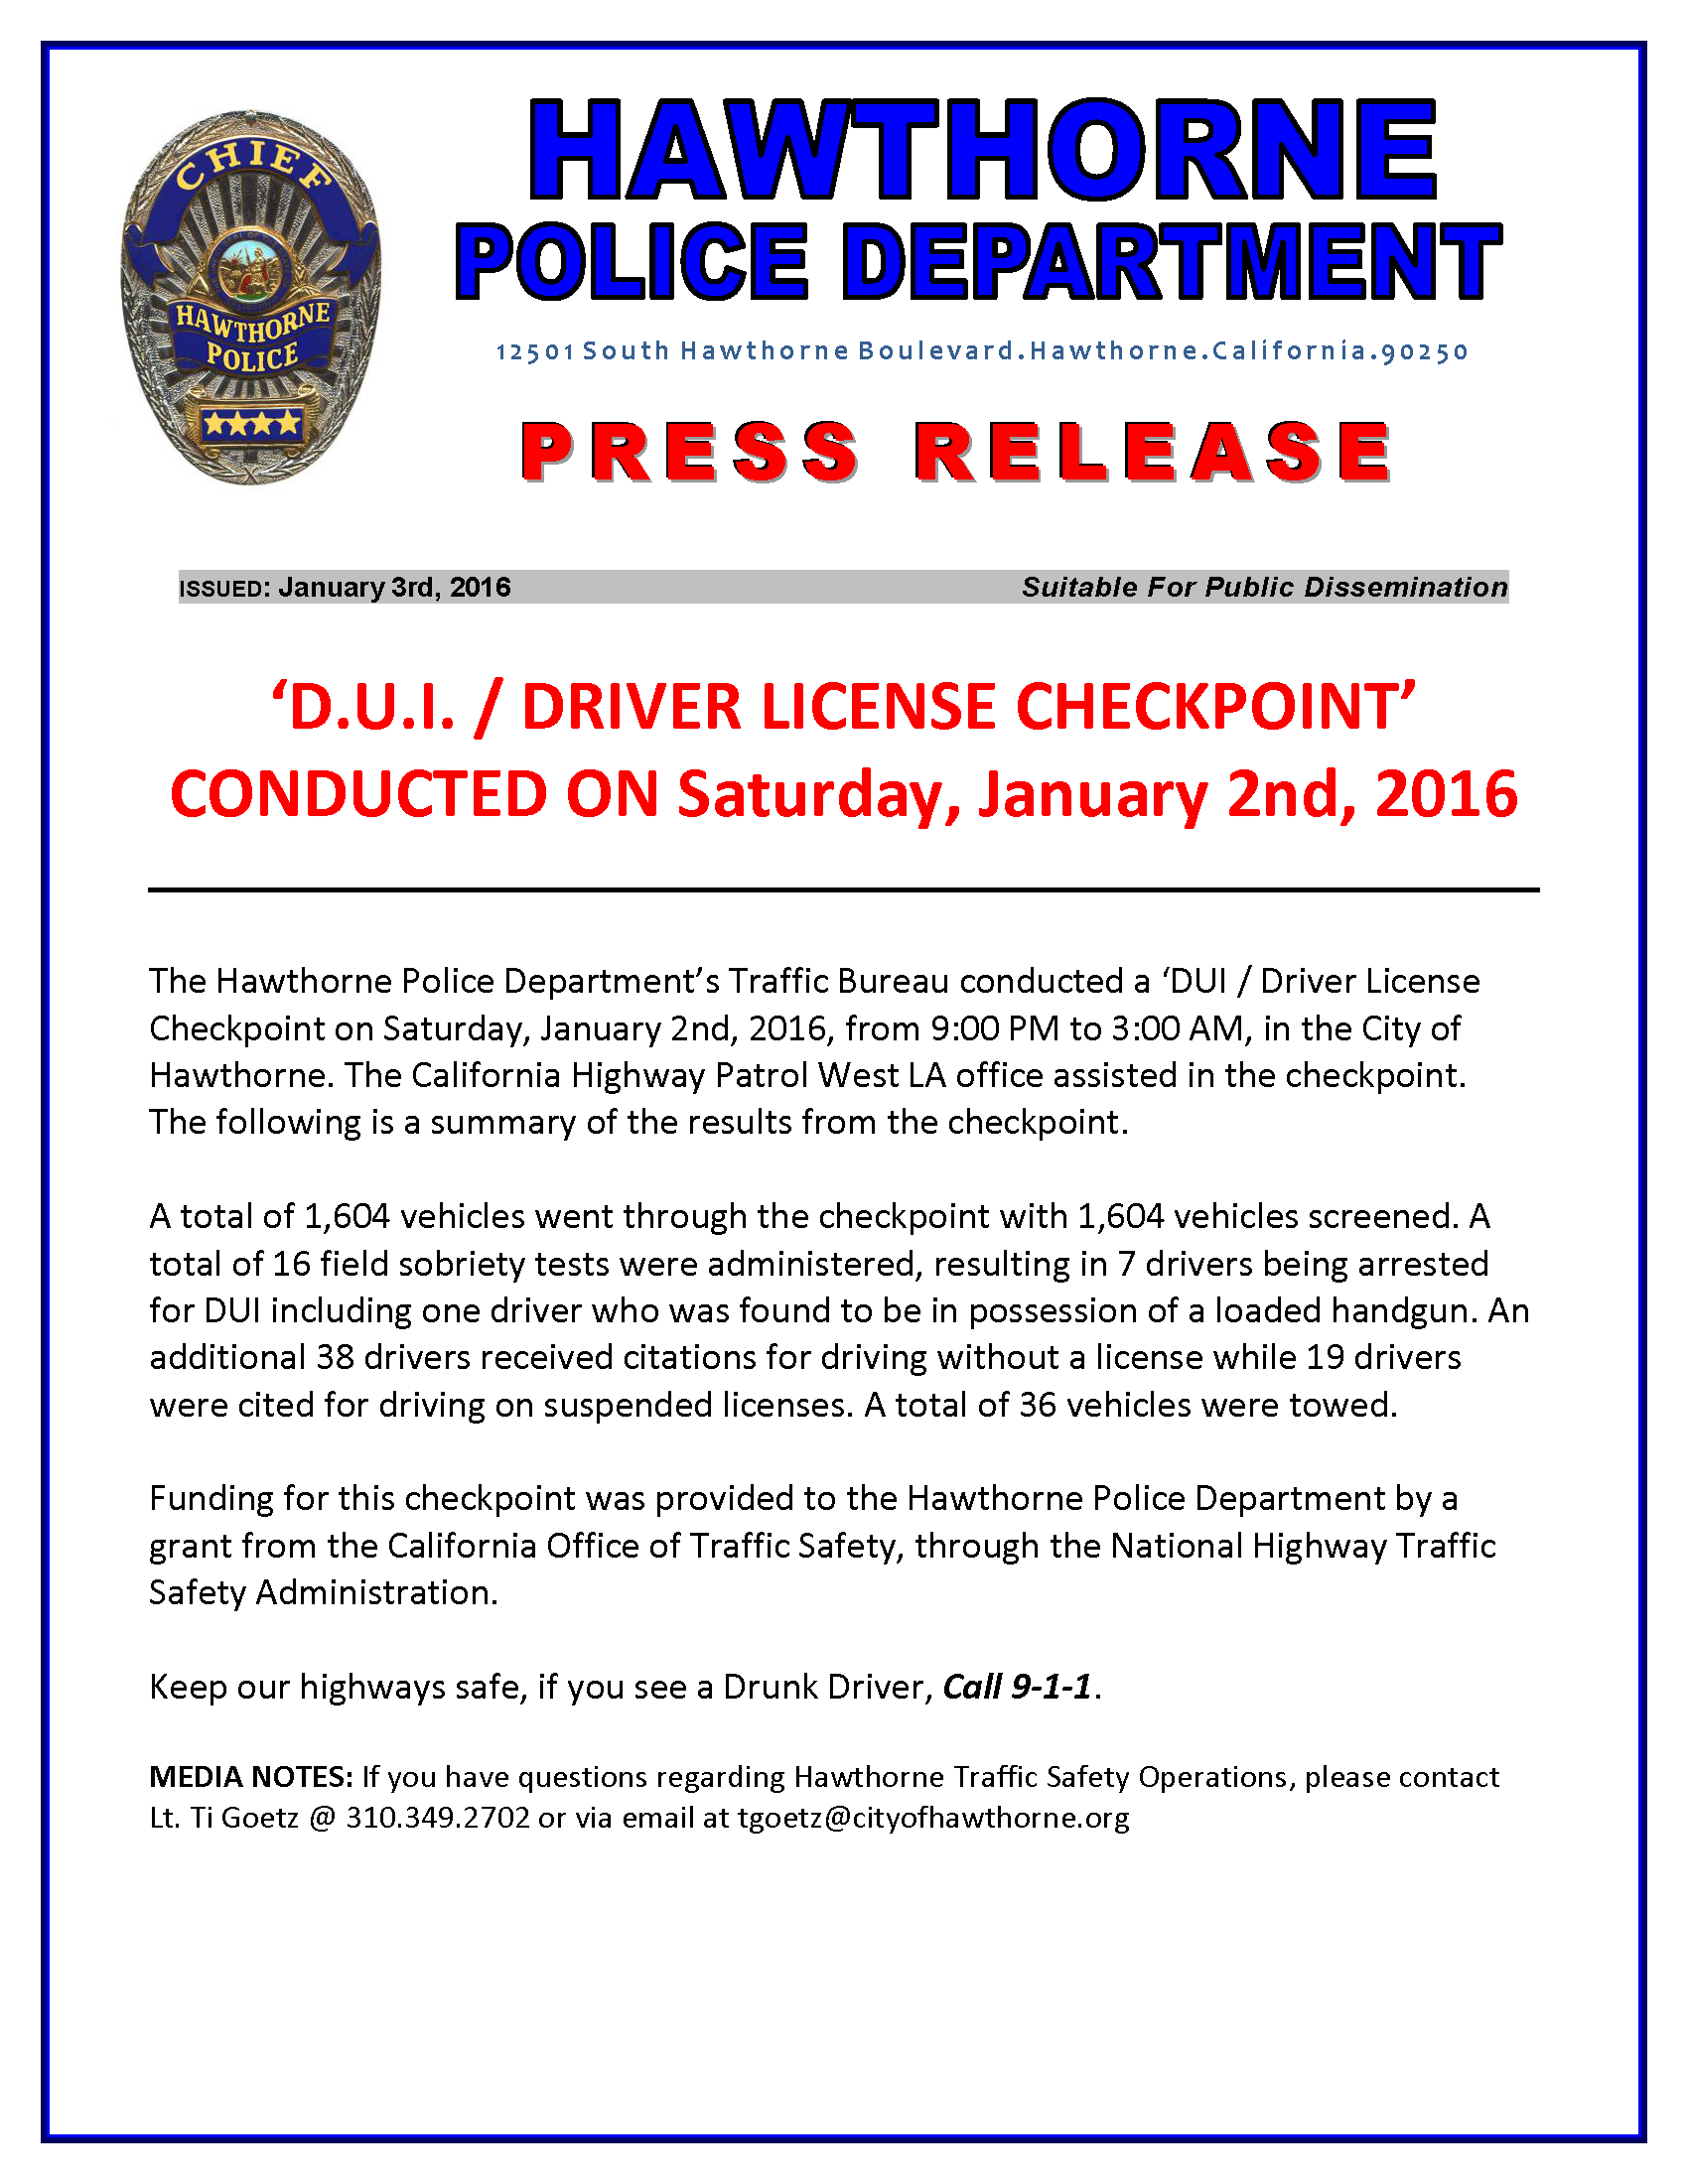 Post Checkpoint Press Release.png